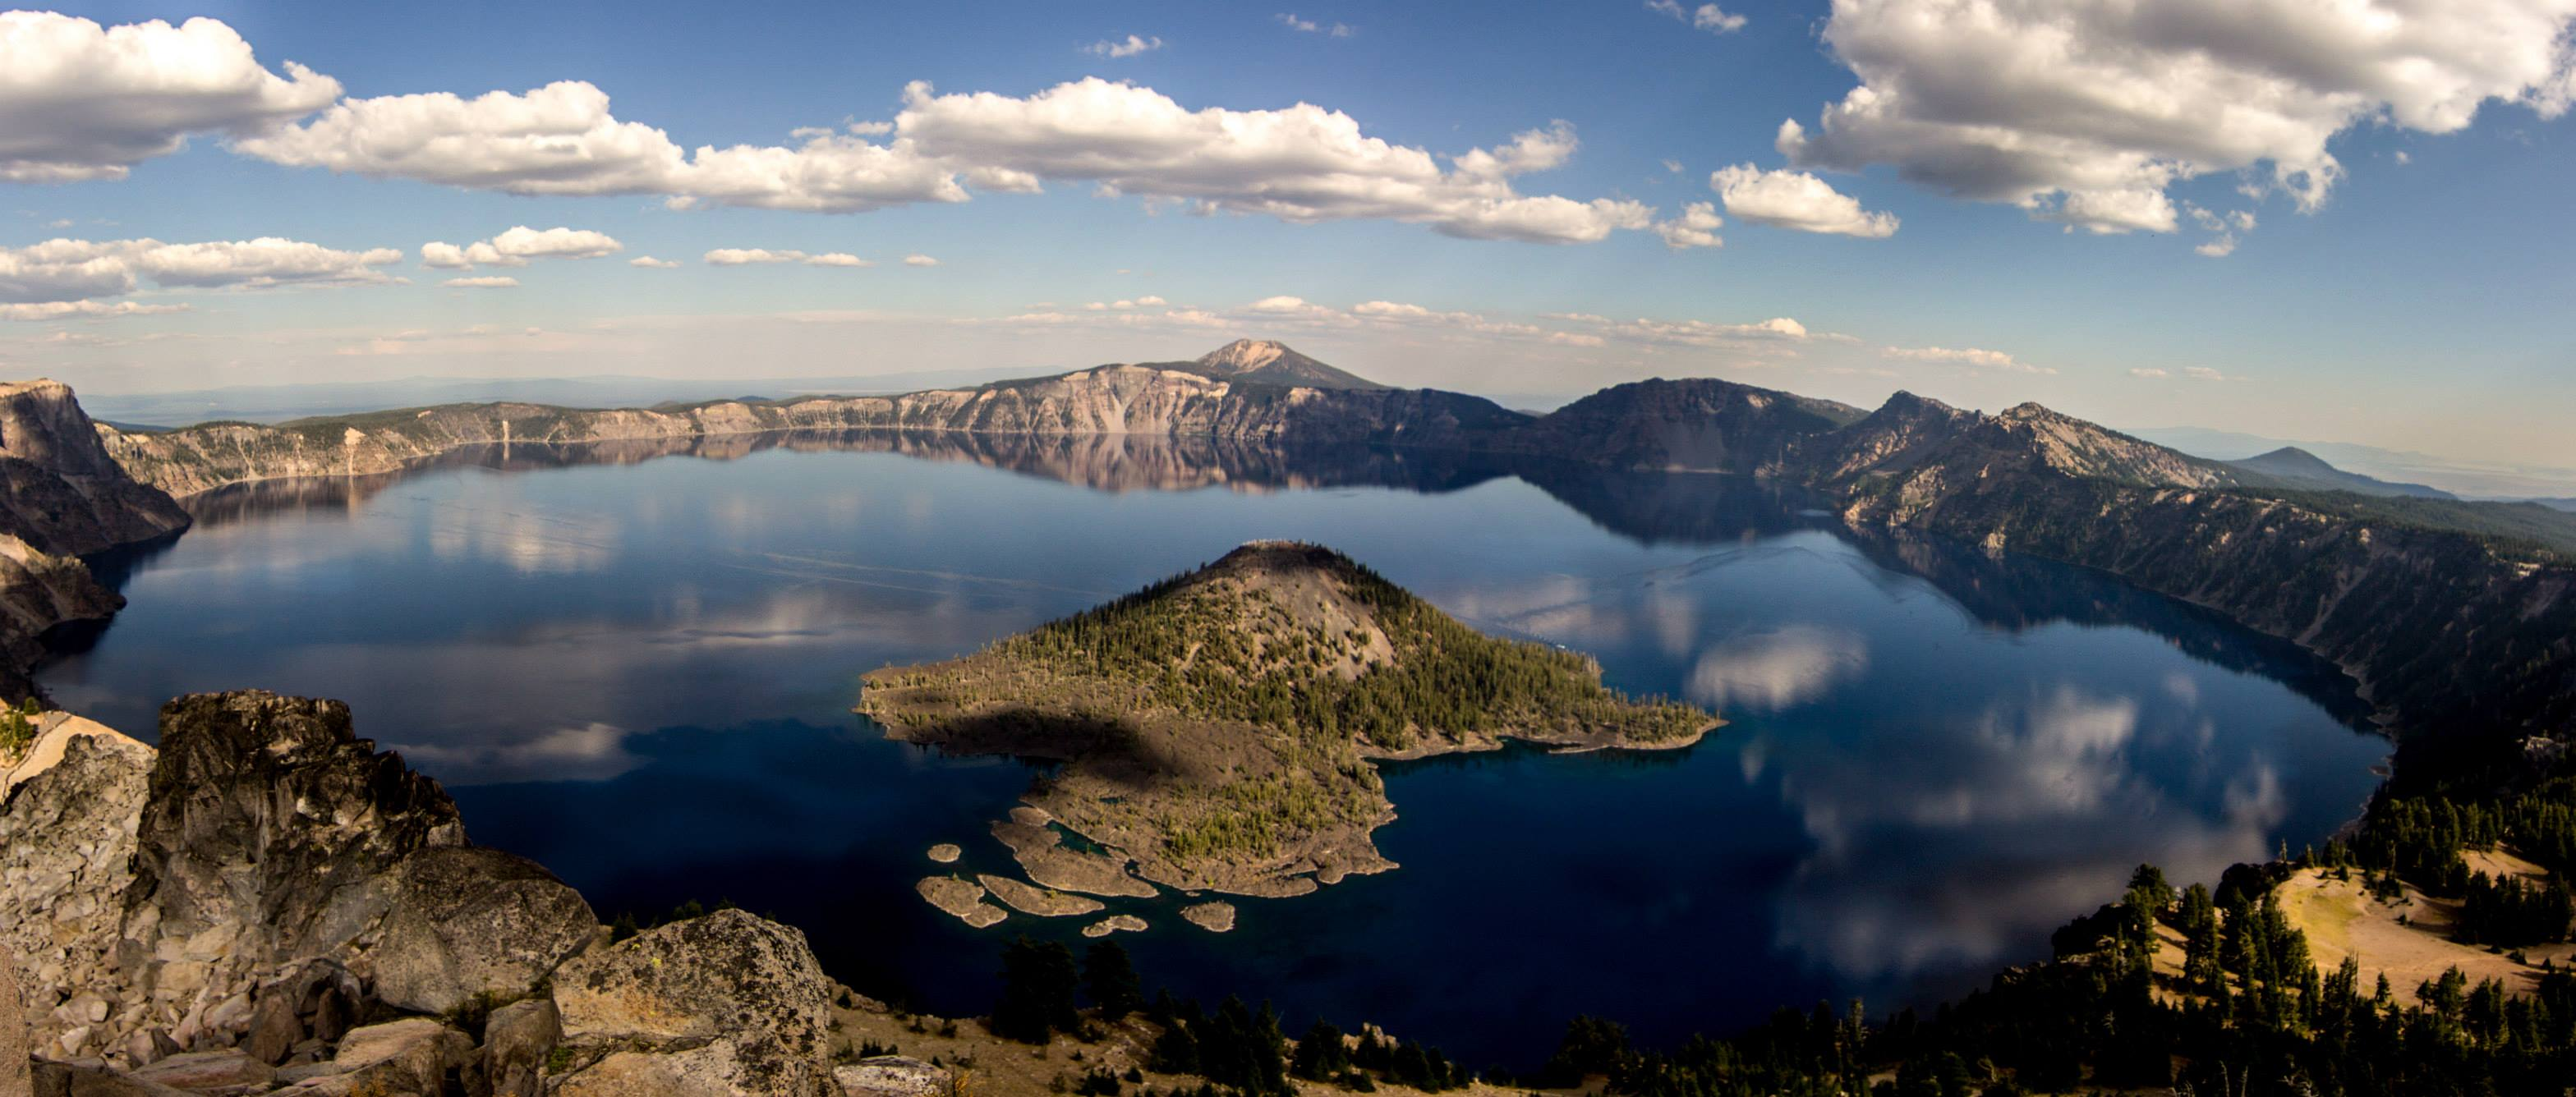 crater lake - Lakes in USA